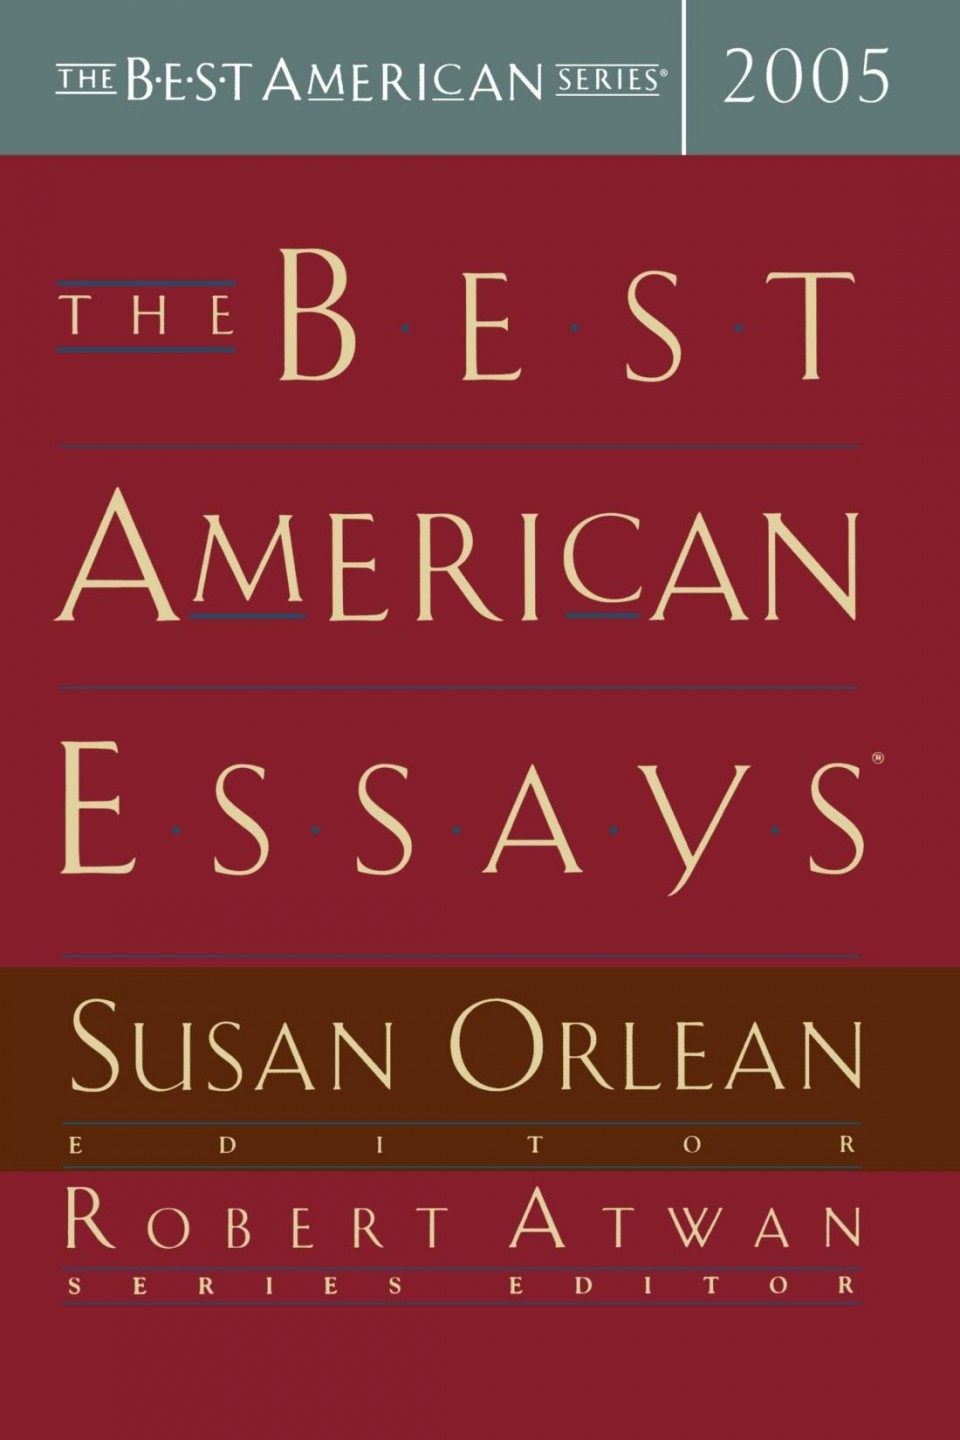 009 Essay Example 61eba7rjfxl The Best American Wonderful Essays 2013 Pdf Download Of Century Sparknotes 2017 960